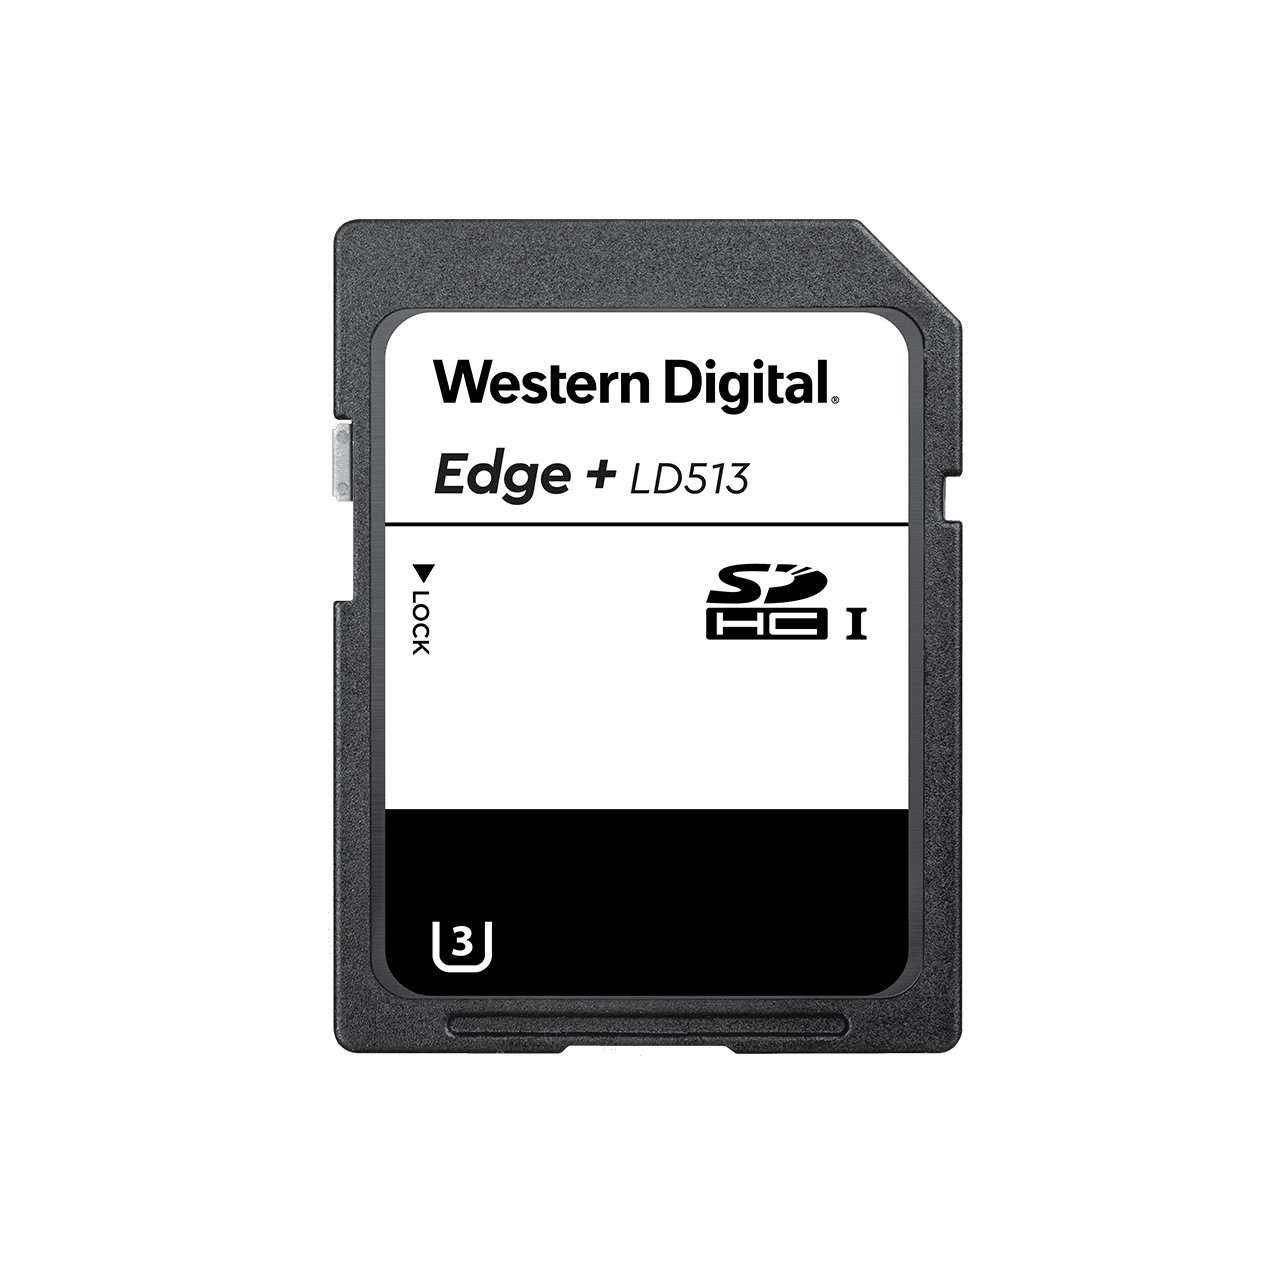 connected-home-sd-cards-edge-plus-ld513-western-digital